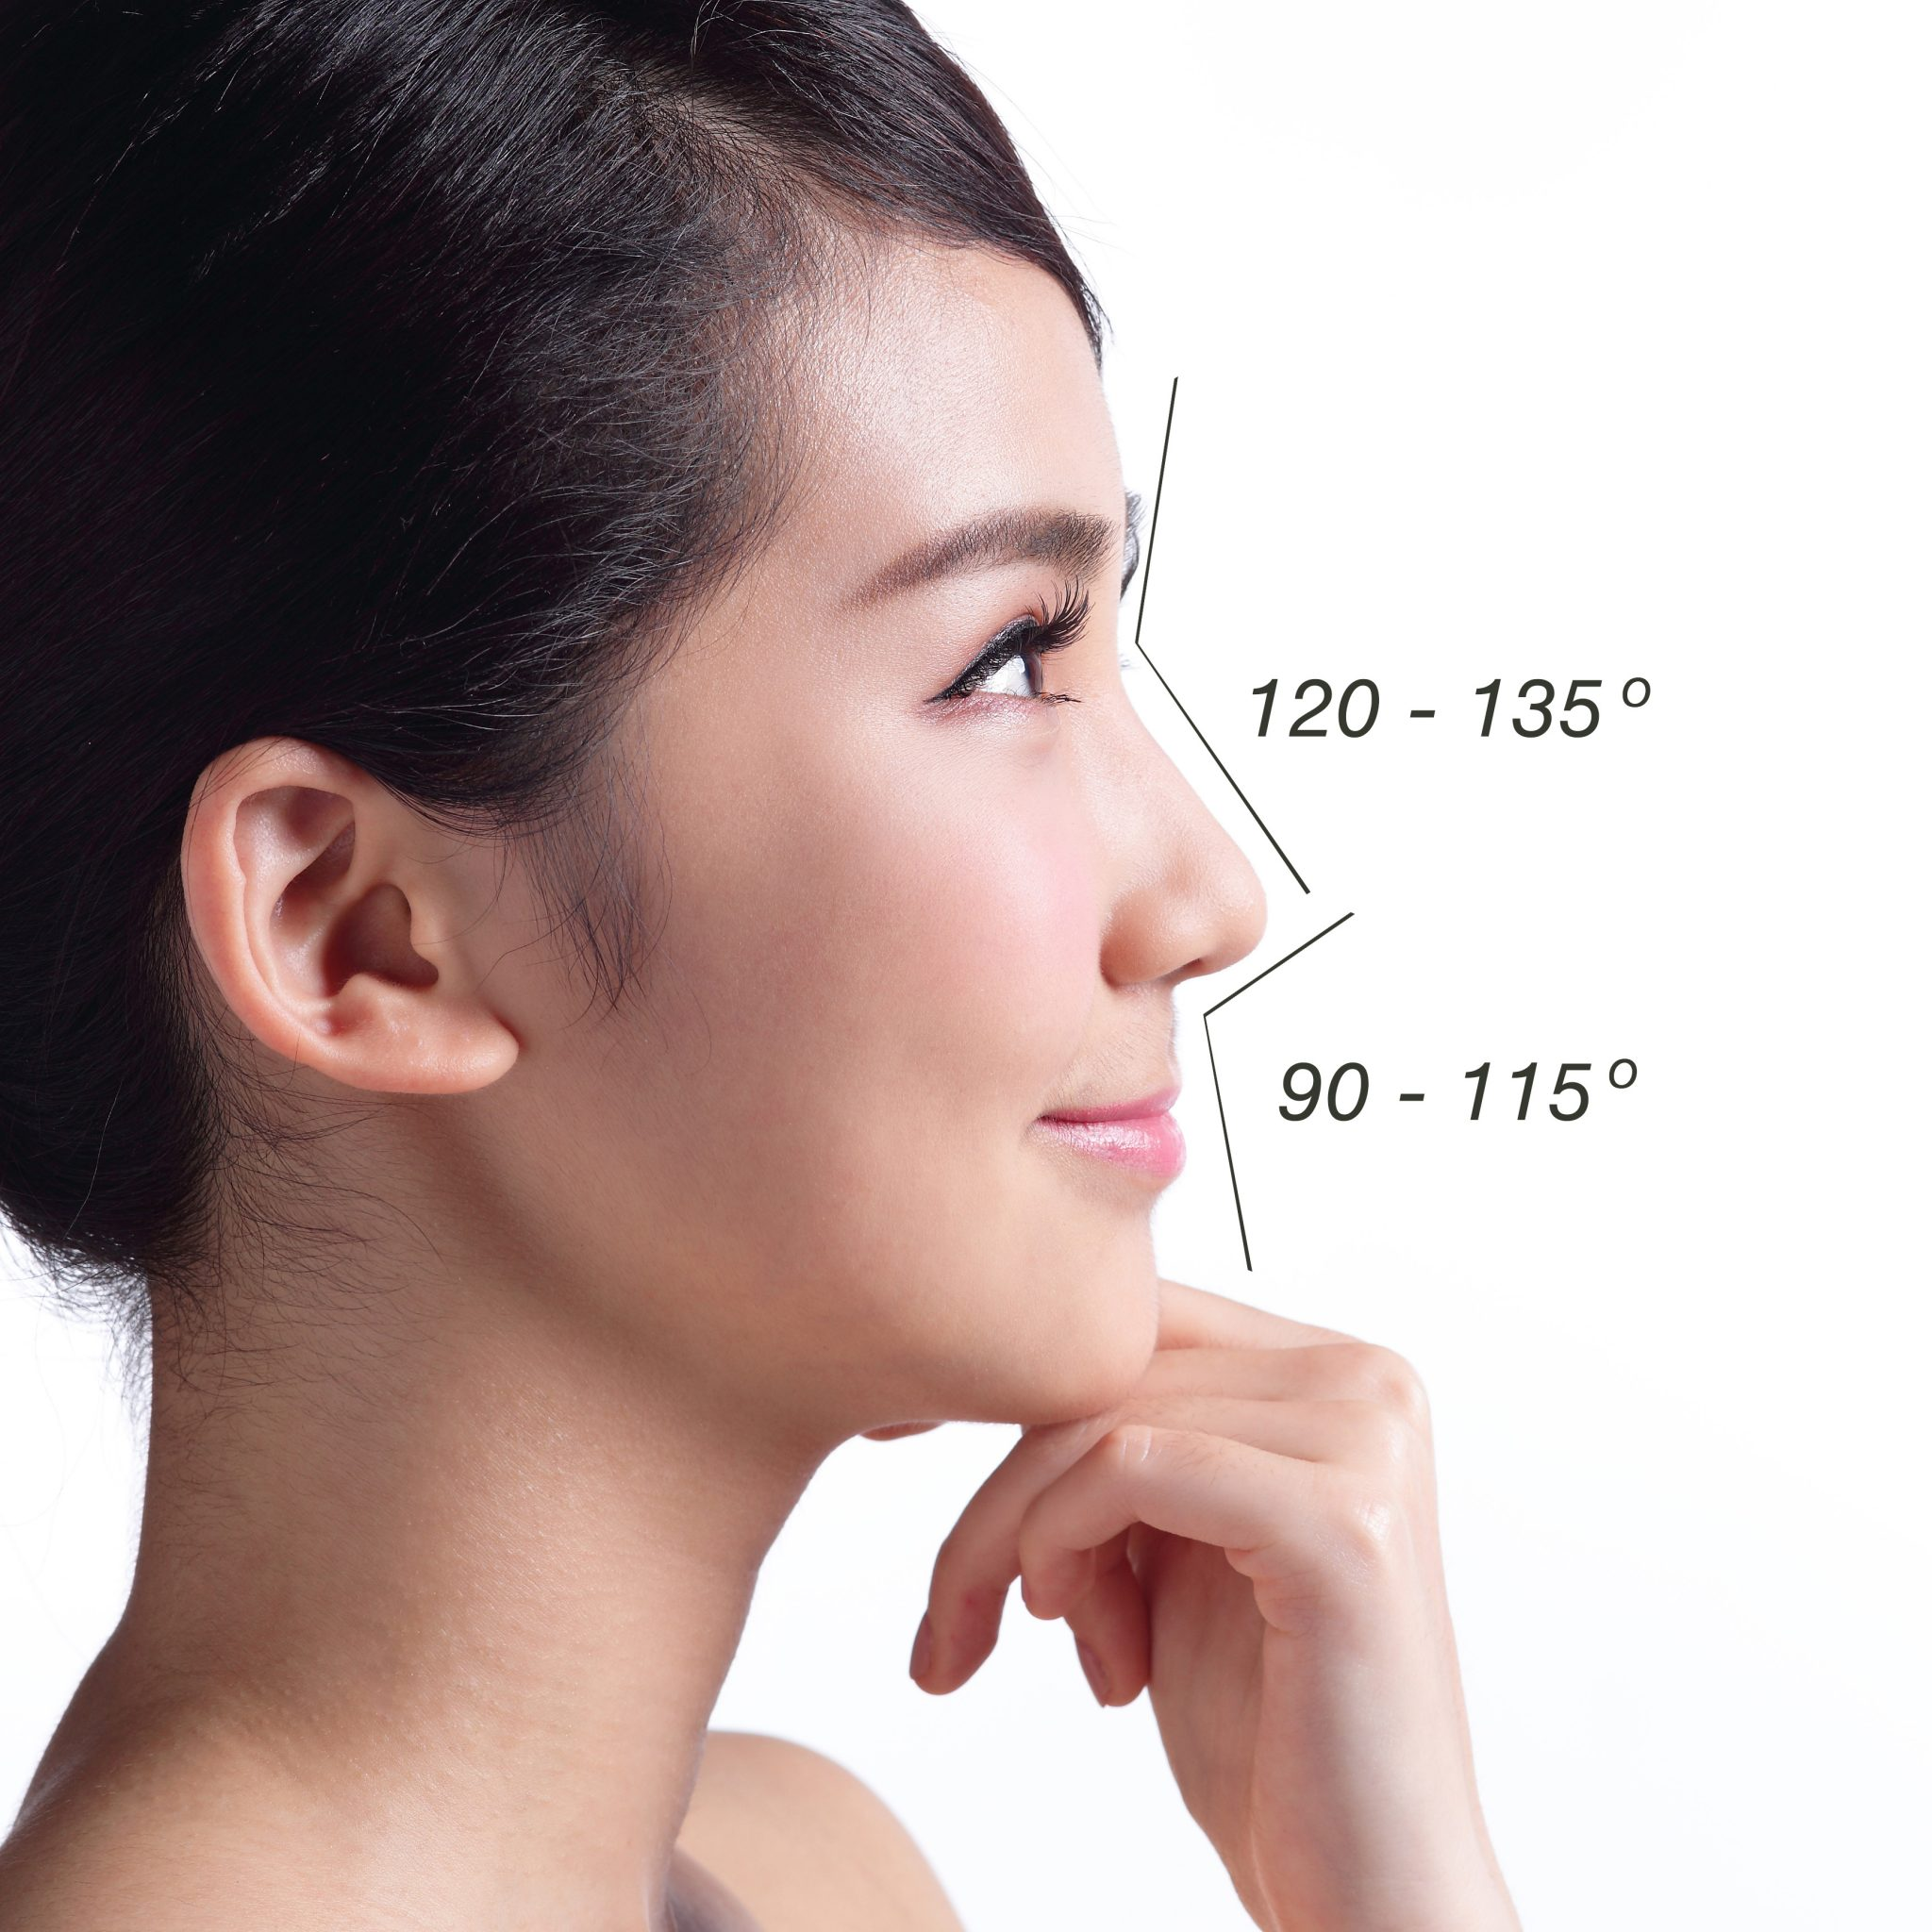 Korean Nose Thread Lift Procedure - everything you need to